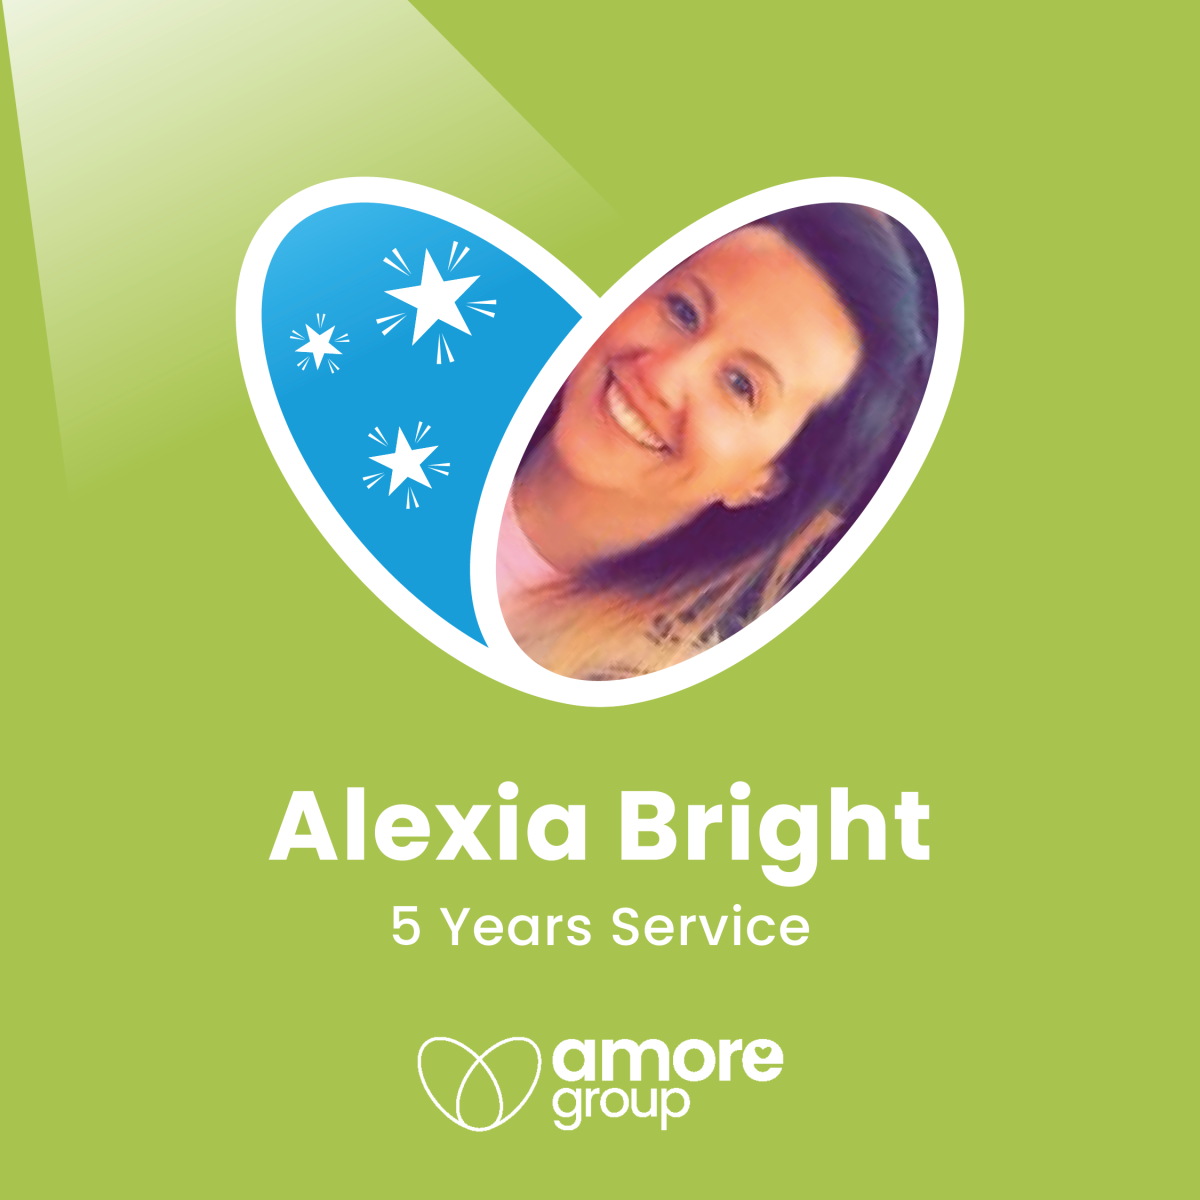 Congratulations Lexi on 5 years service at Amore!